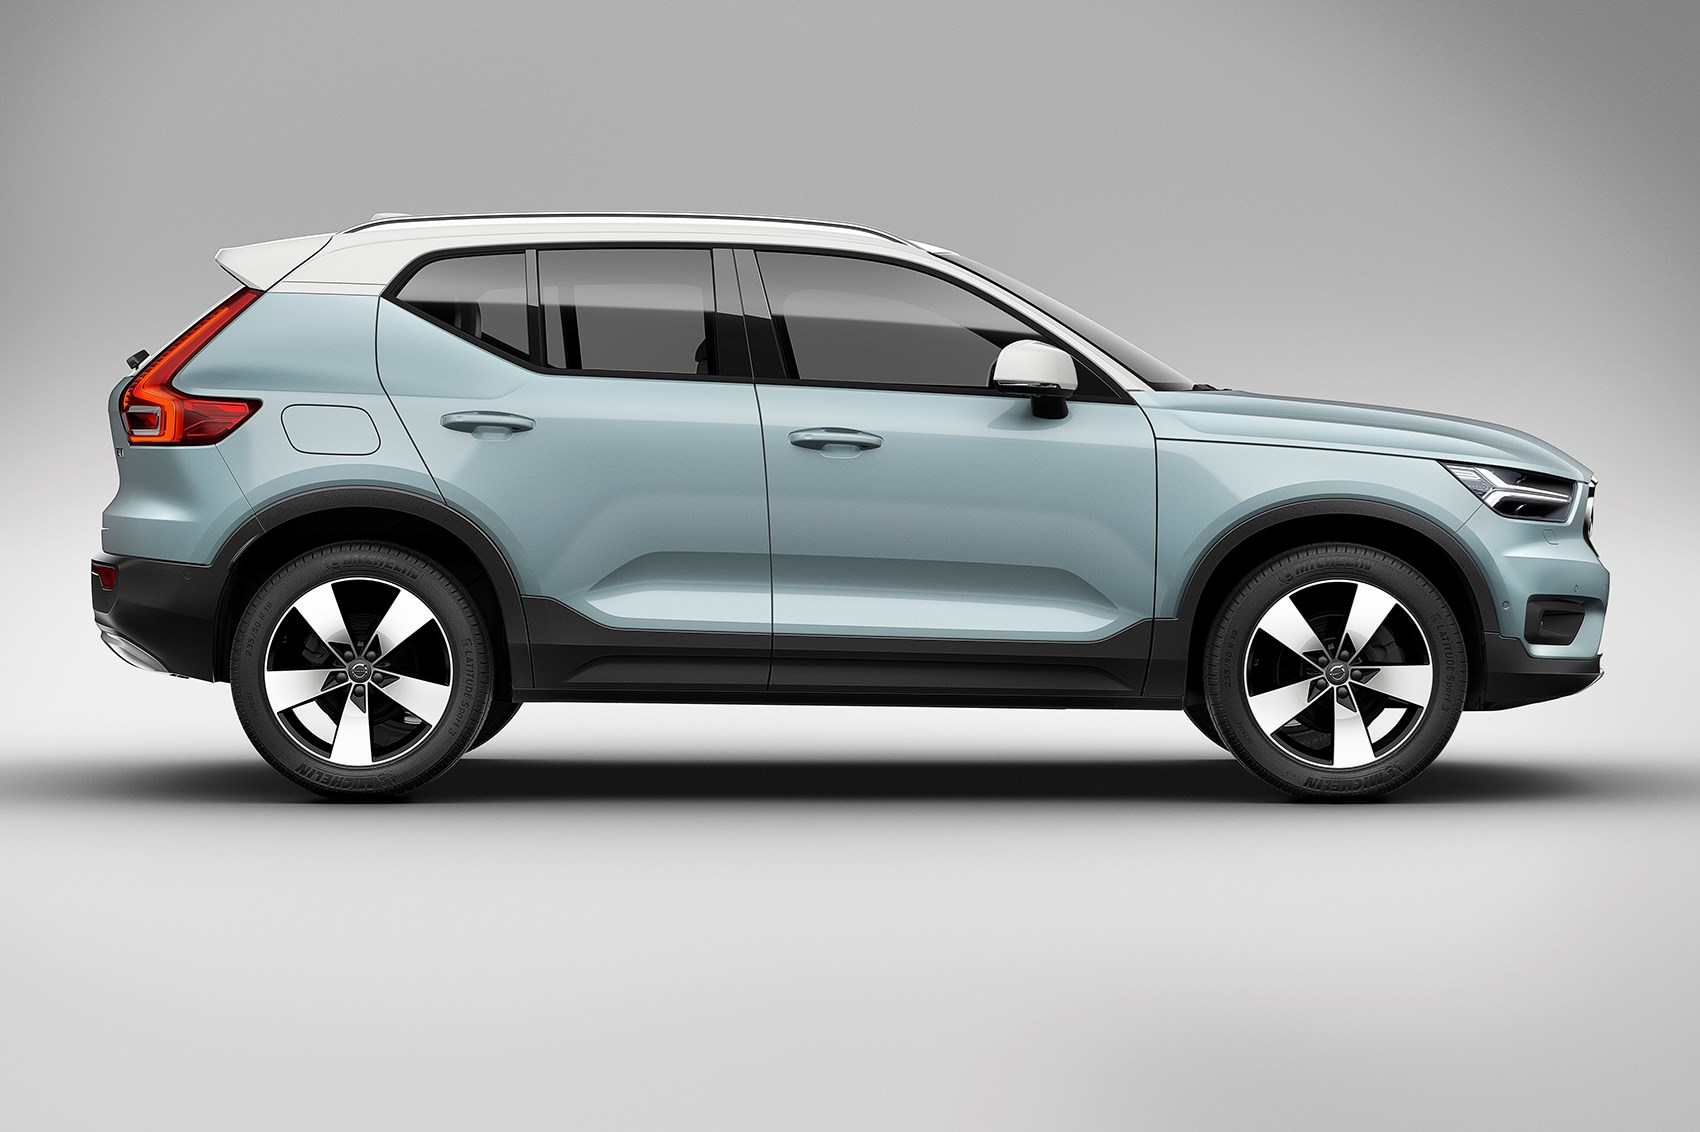 Volvo Xc40 Revealed All New Baby Crossover Is Go For 2018